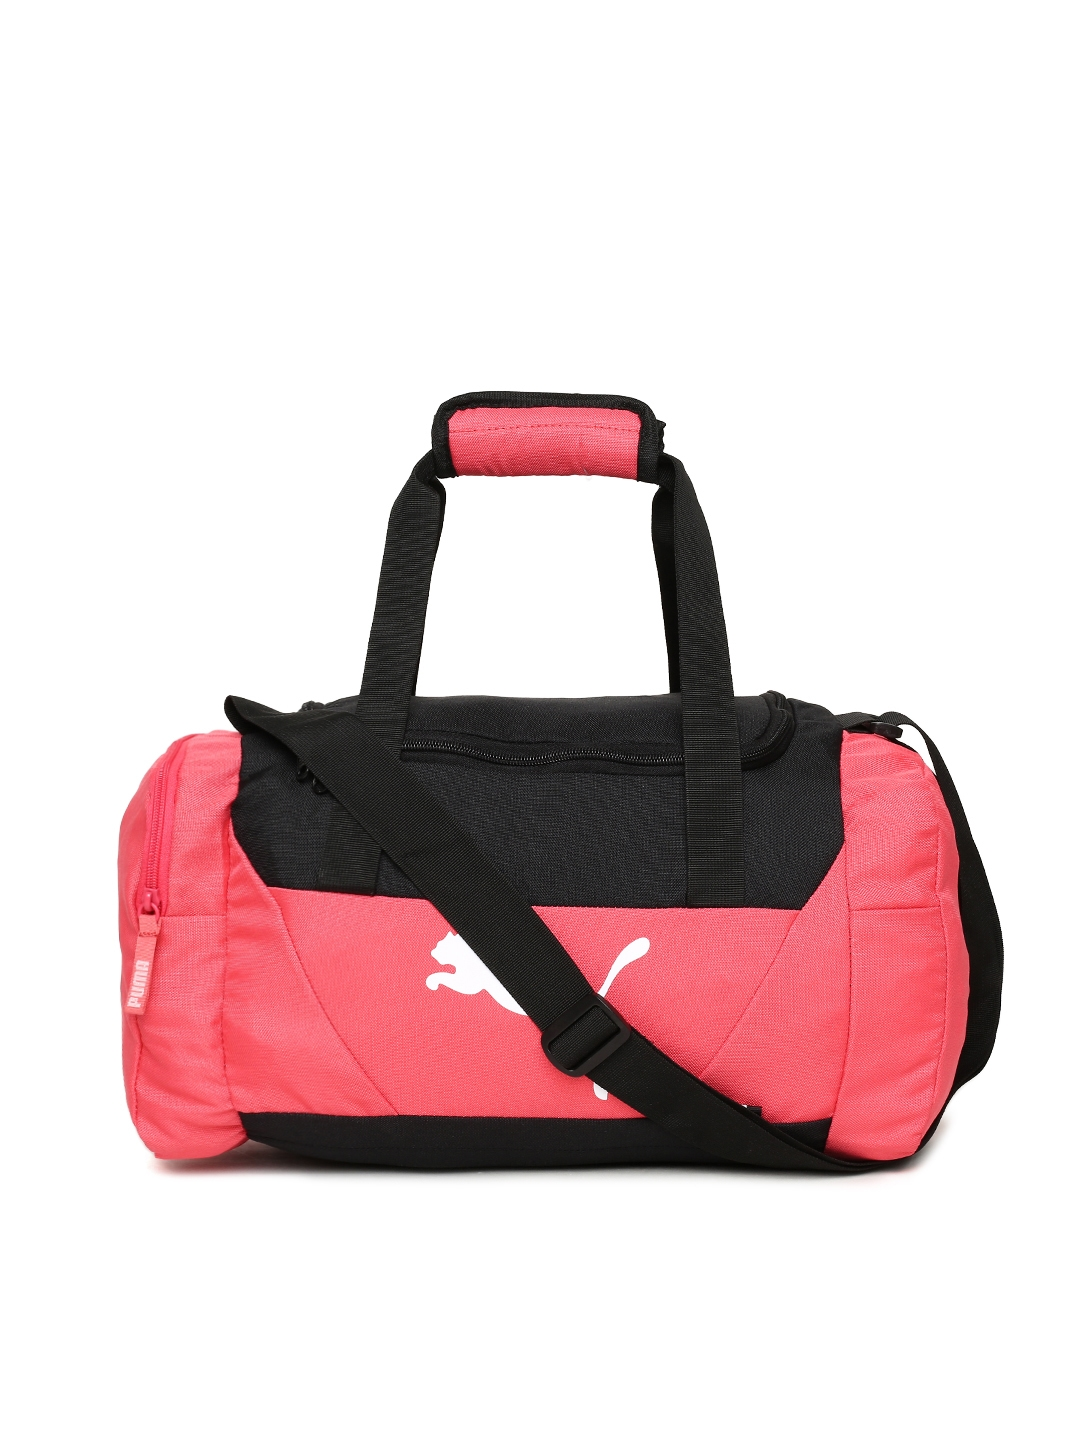 0cf304bd1b Buy Puma Unisex Pink   Black Fundamentals Sports Duffel Bag - Duffel ...